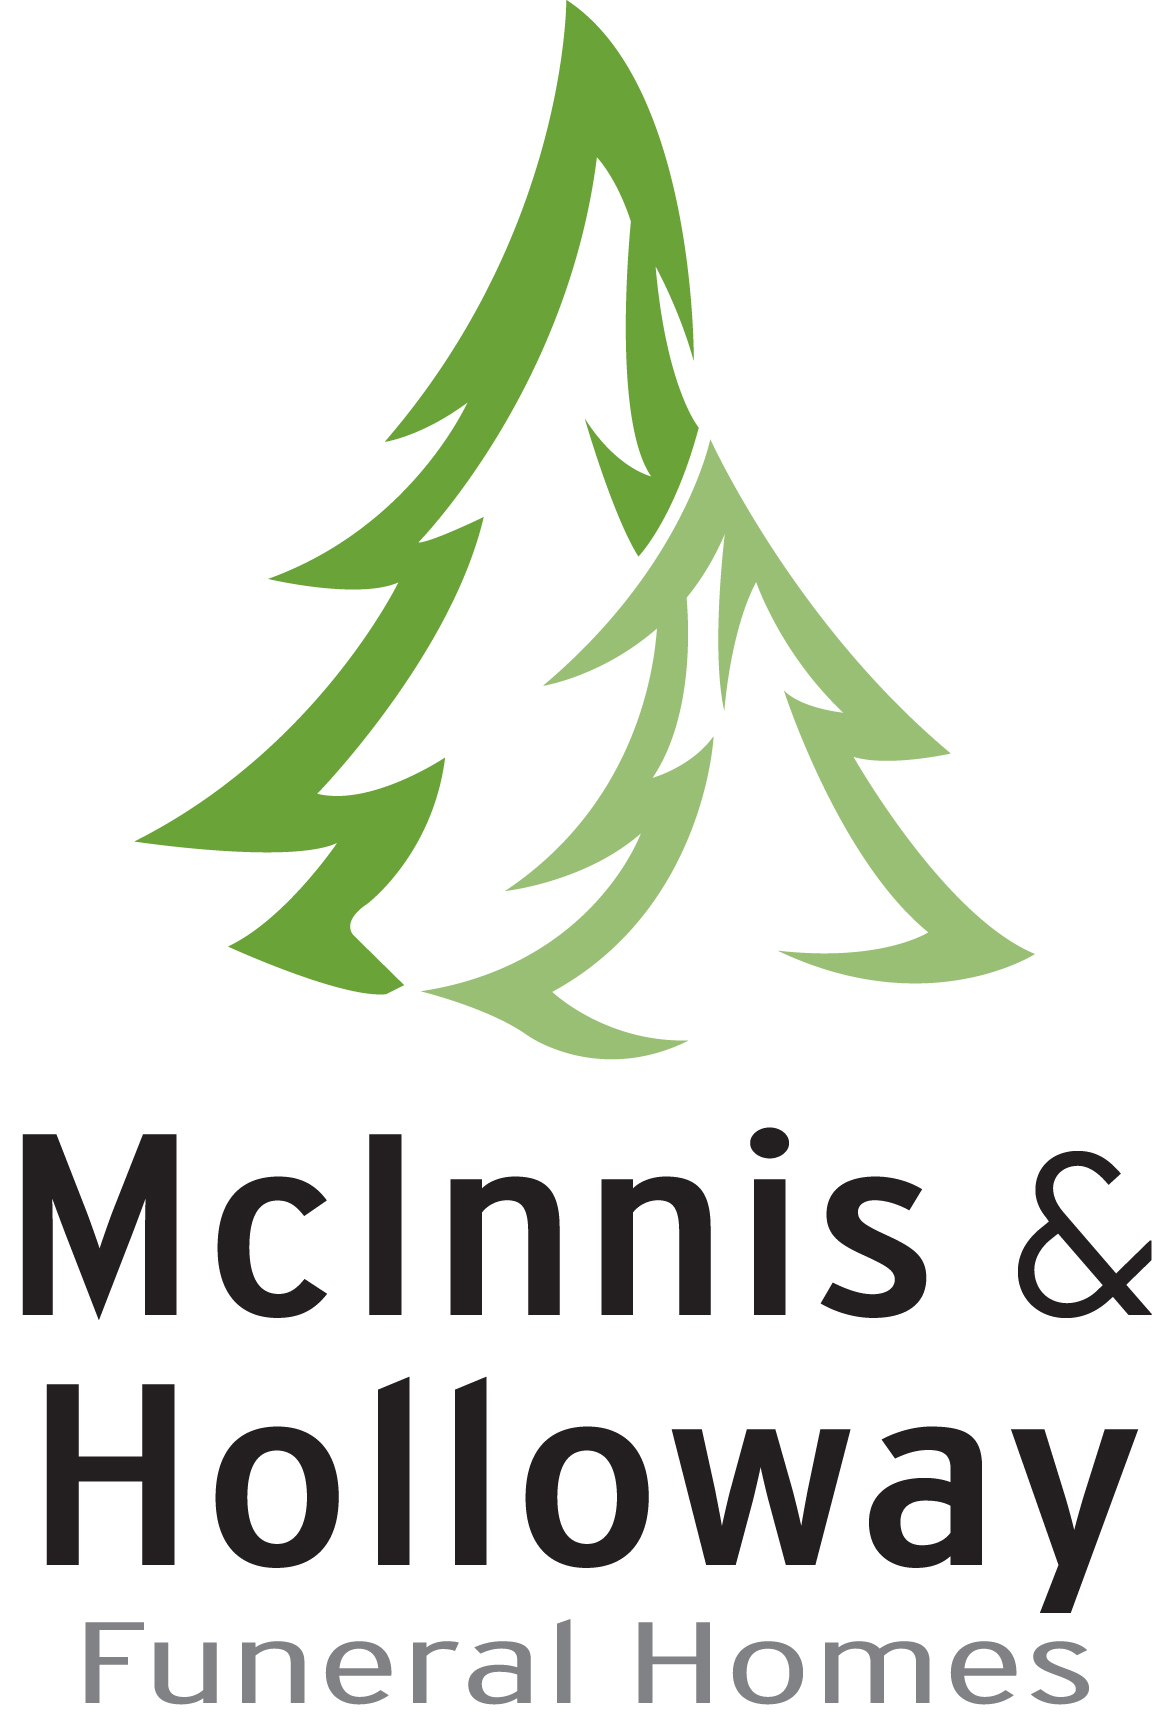 McInnis & Holloway Funeral Homes